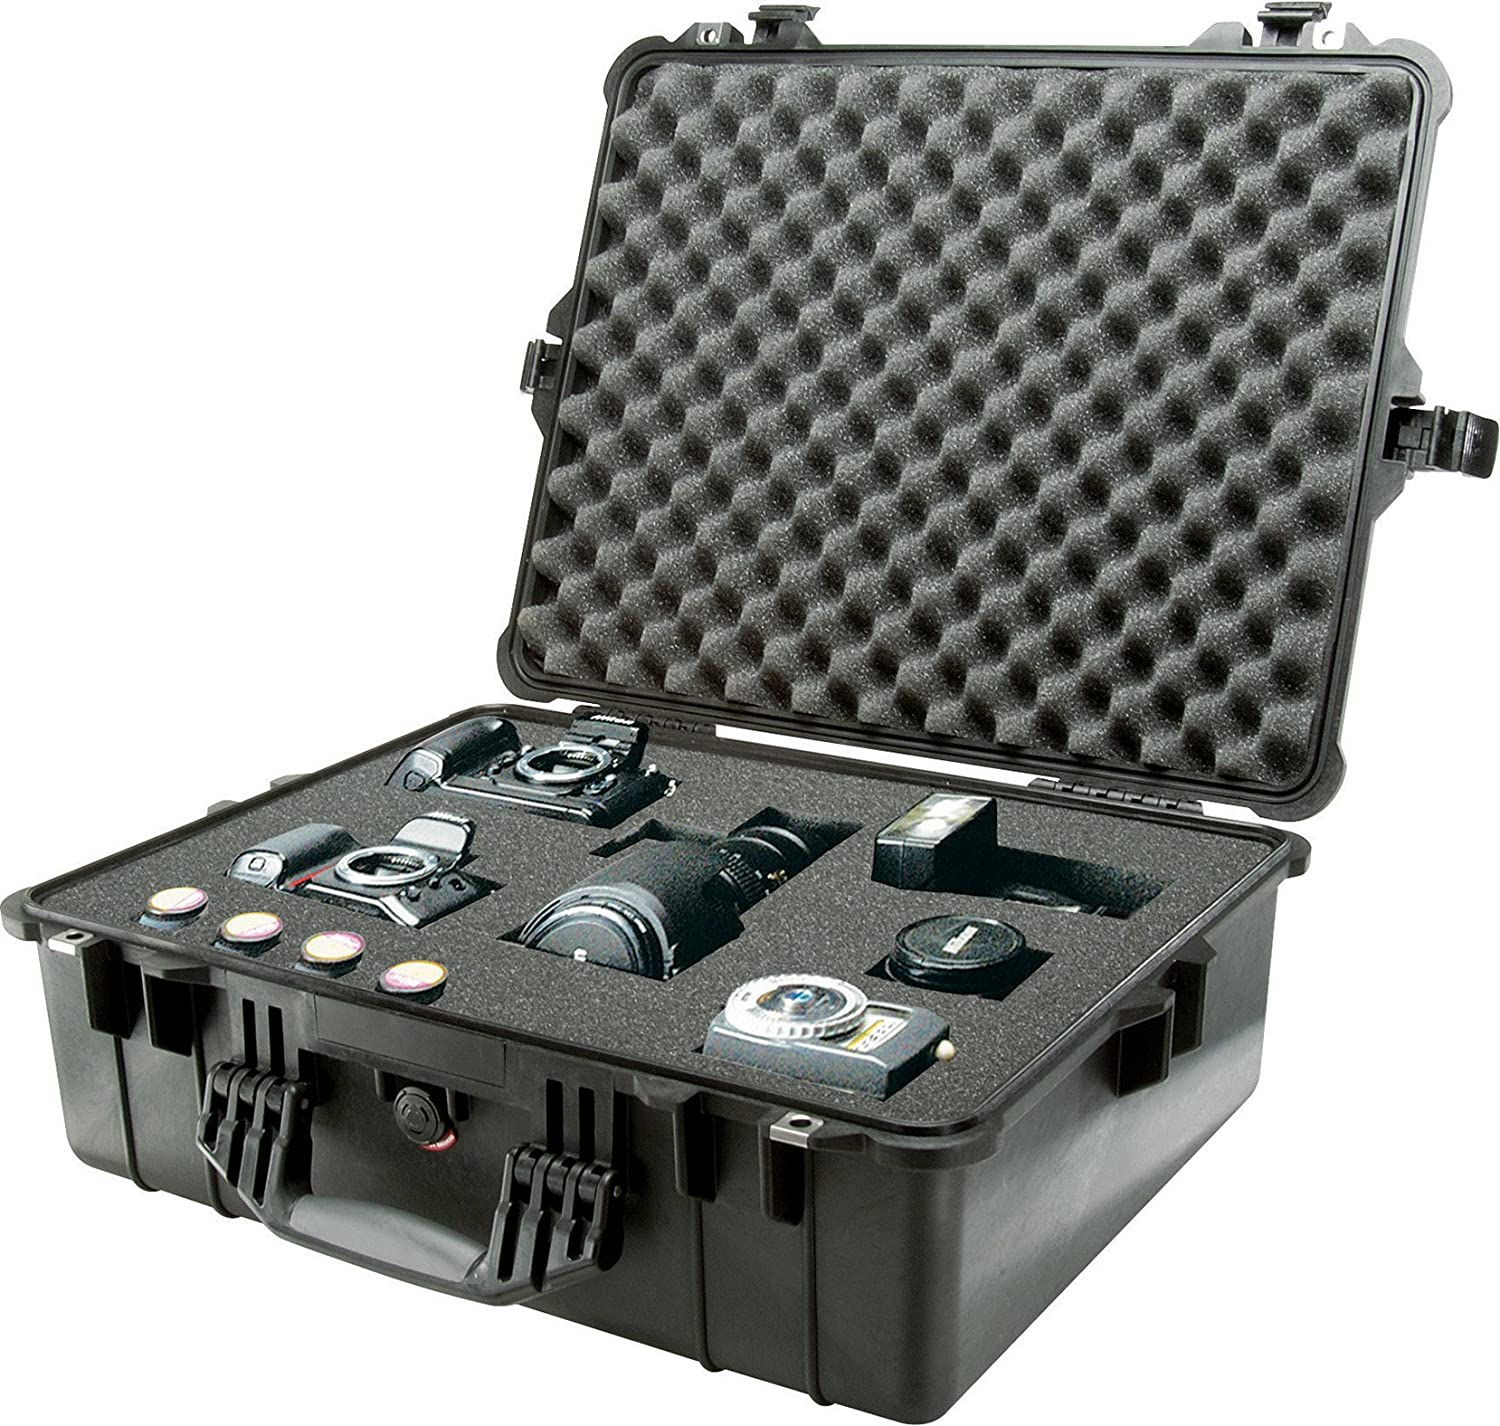 Orange Pelican 1600 Camera Case With Foam